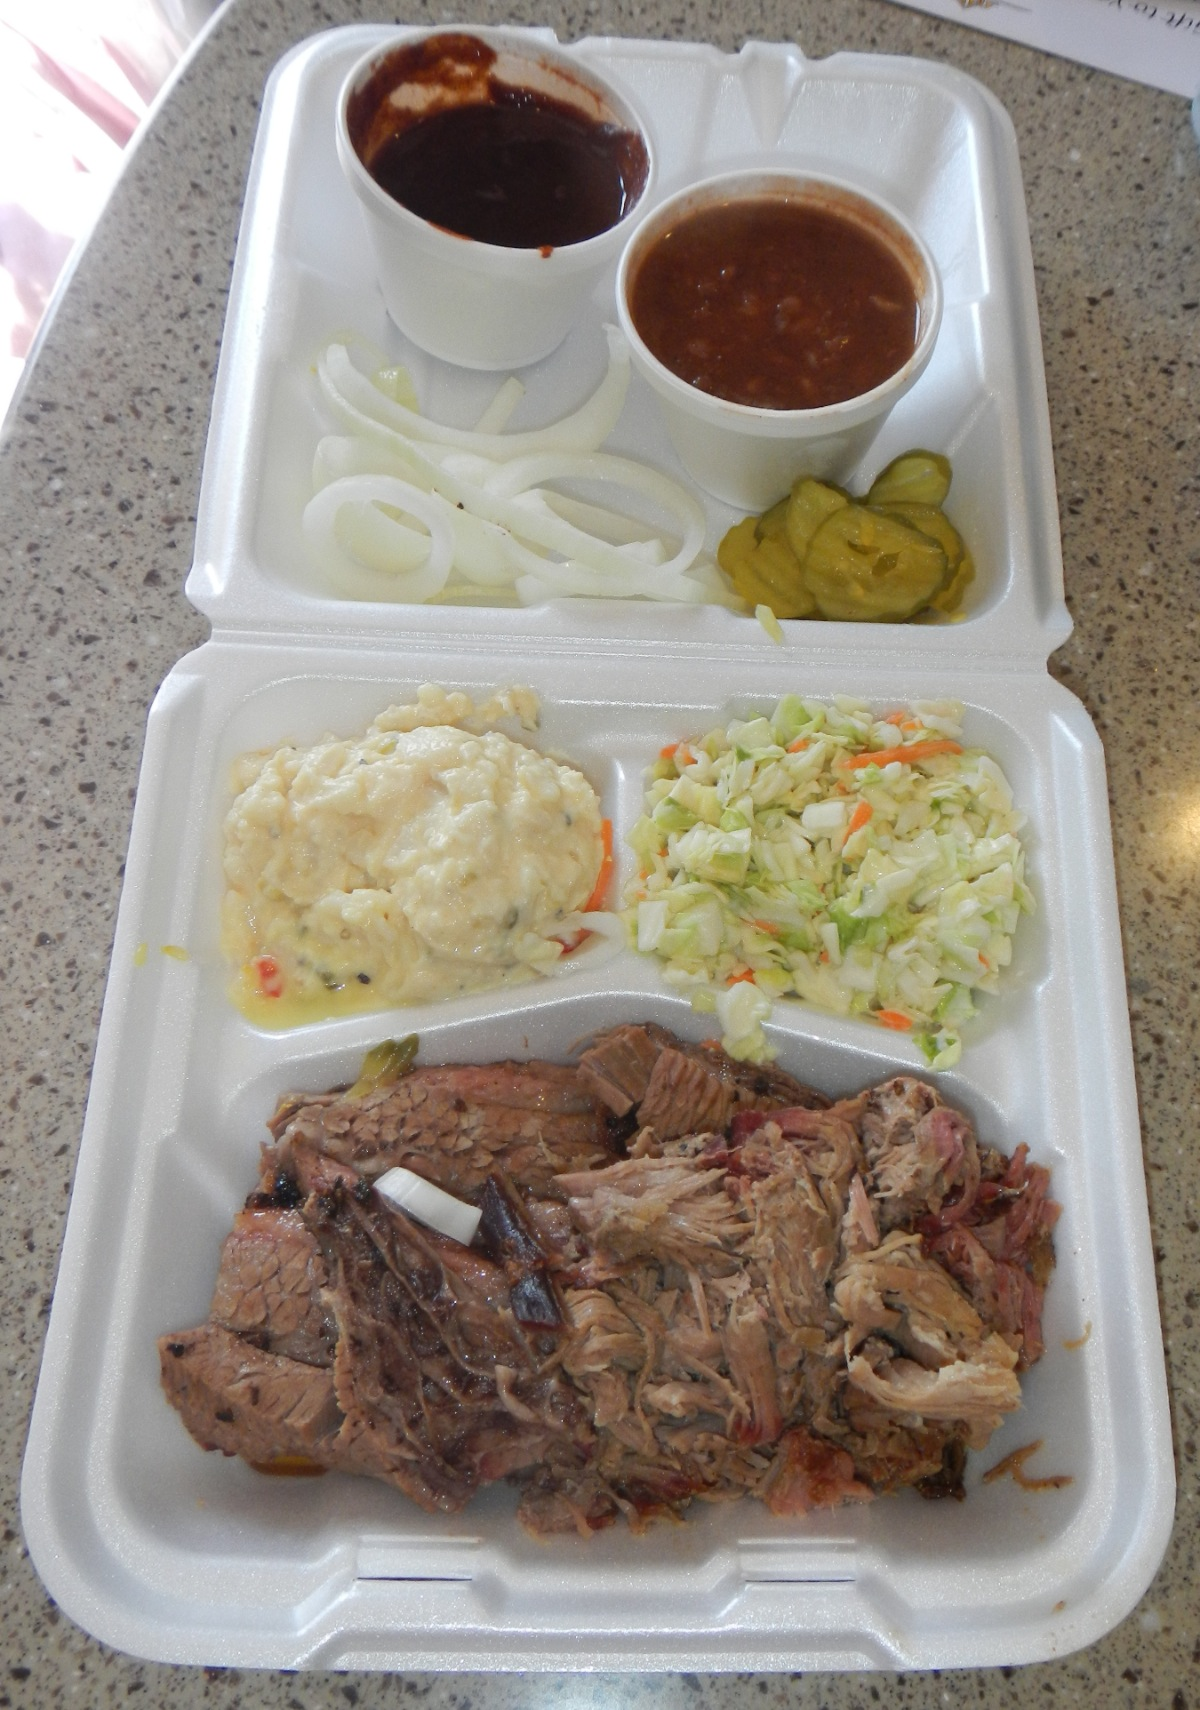 Here's the 3 meat plate.  I got Brisket, Brisket and Pulled Pork.  They also gave us ribs to sample.  Yum!